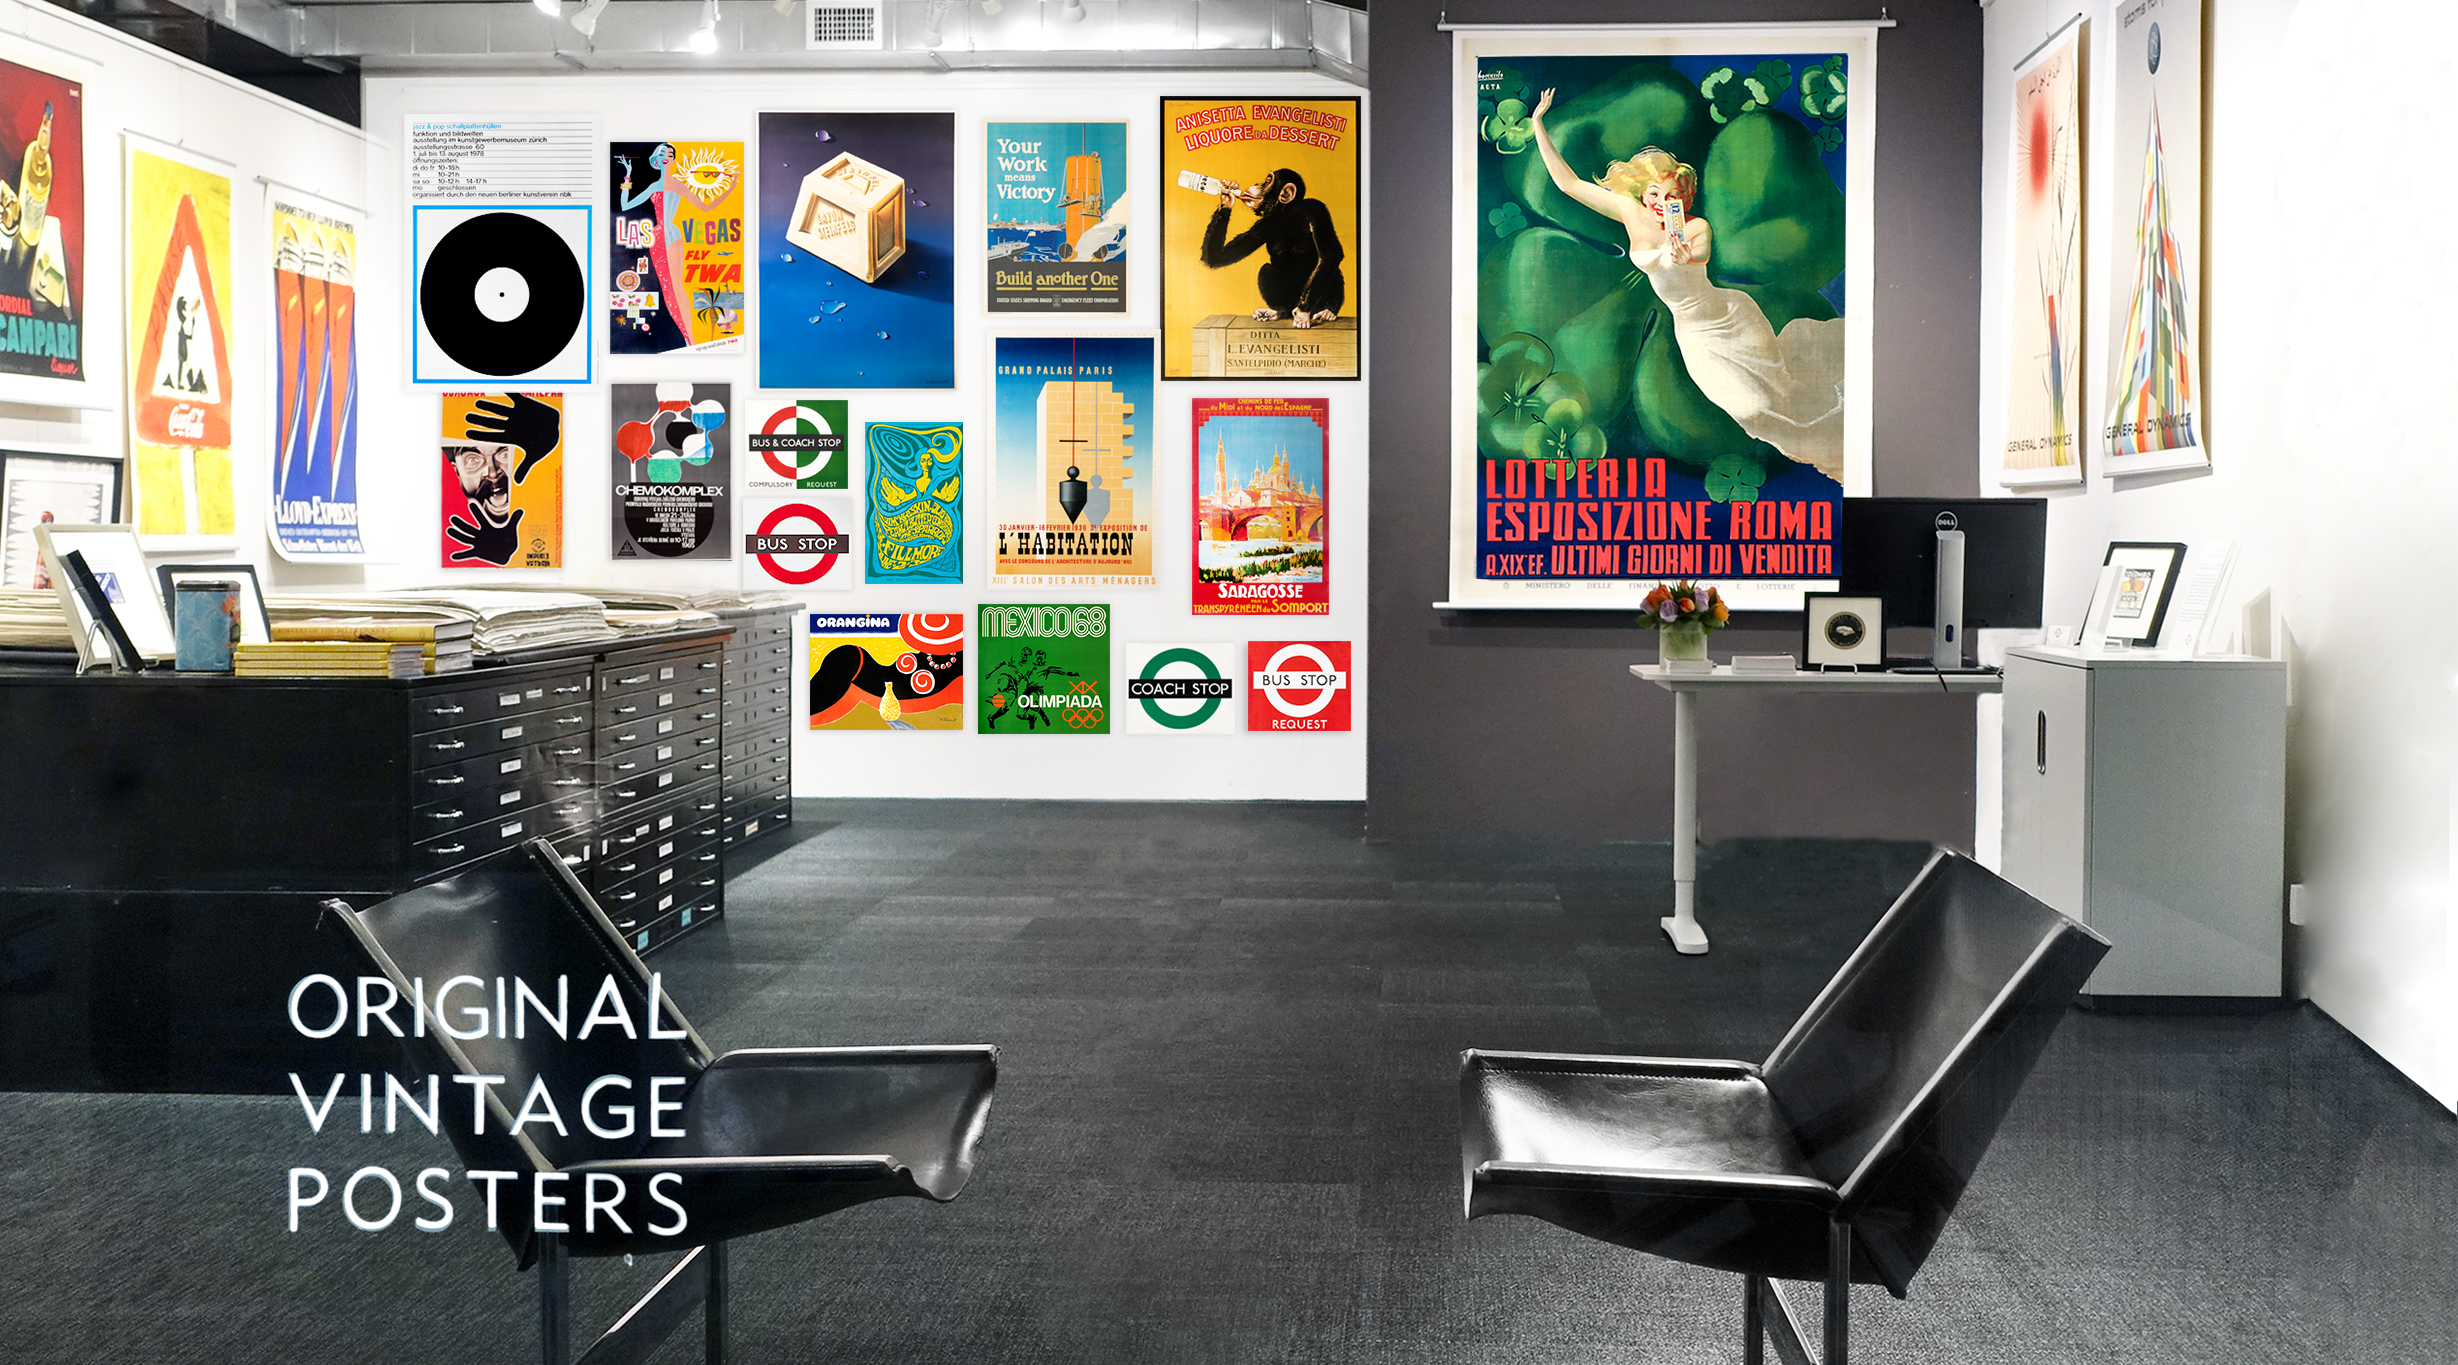 Photo of International Poster Gallery filled with vintage original posters